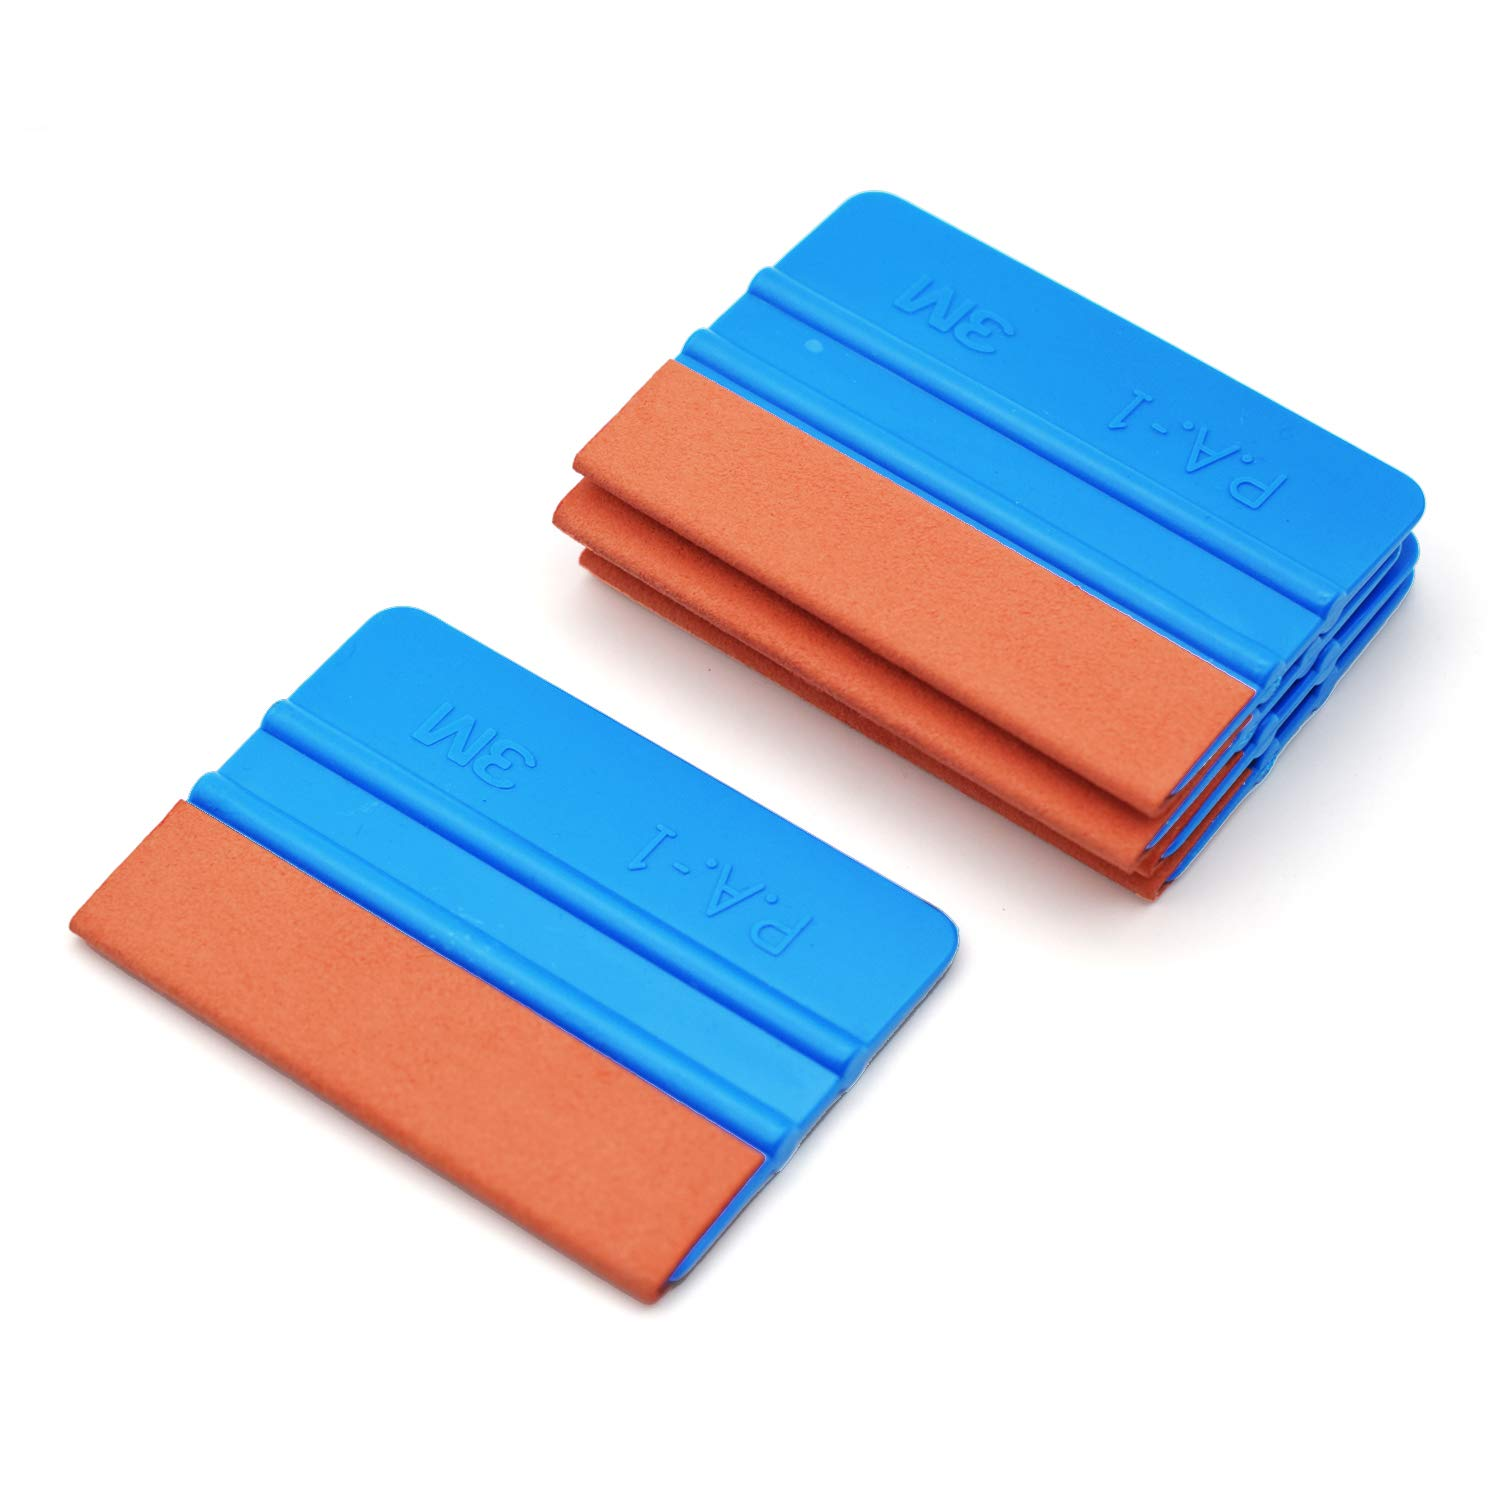 CARTINTS 5 Pack Automotive Suede Felt Edge Squeegee for Vinyl Film Scraper Decal Applicator Tool Wallpaper Tool Window Tint Tool for Auto Vinyl Wrap, Window Tinting, Wallpaper Installing-4 Inch